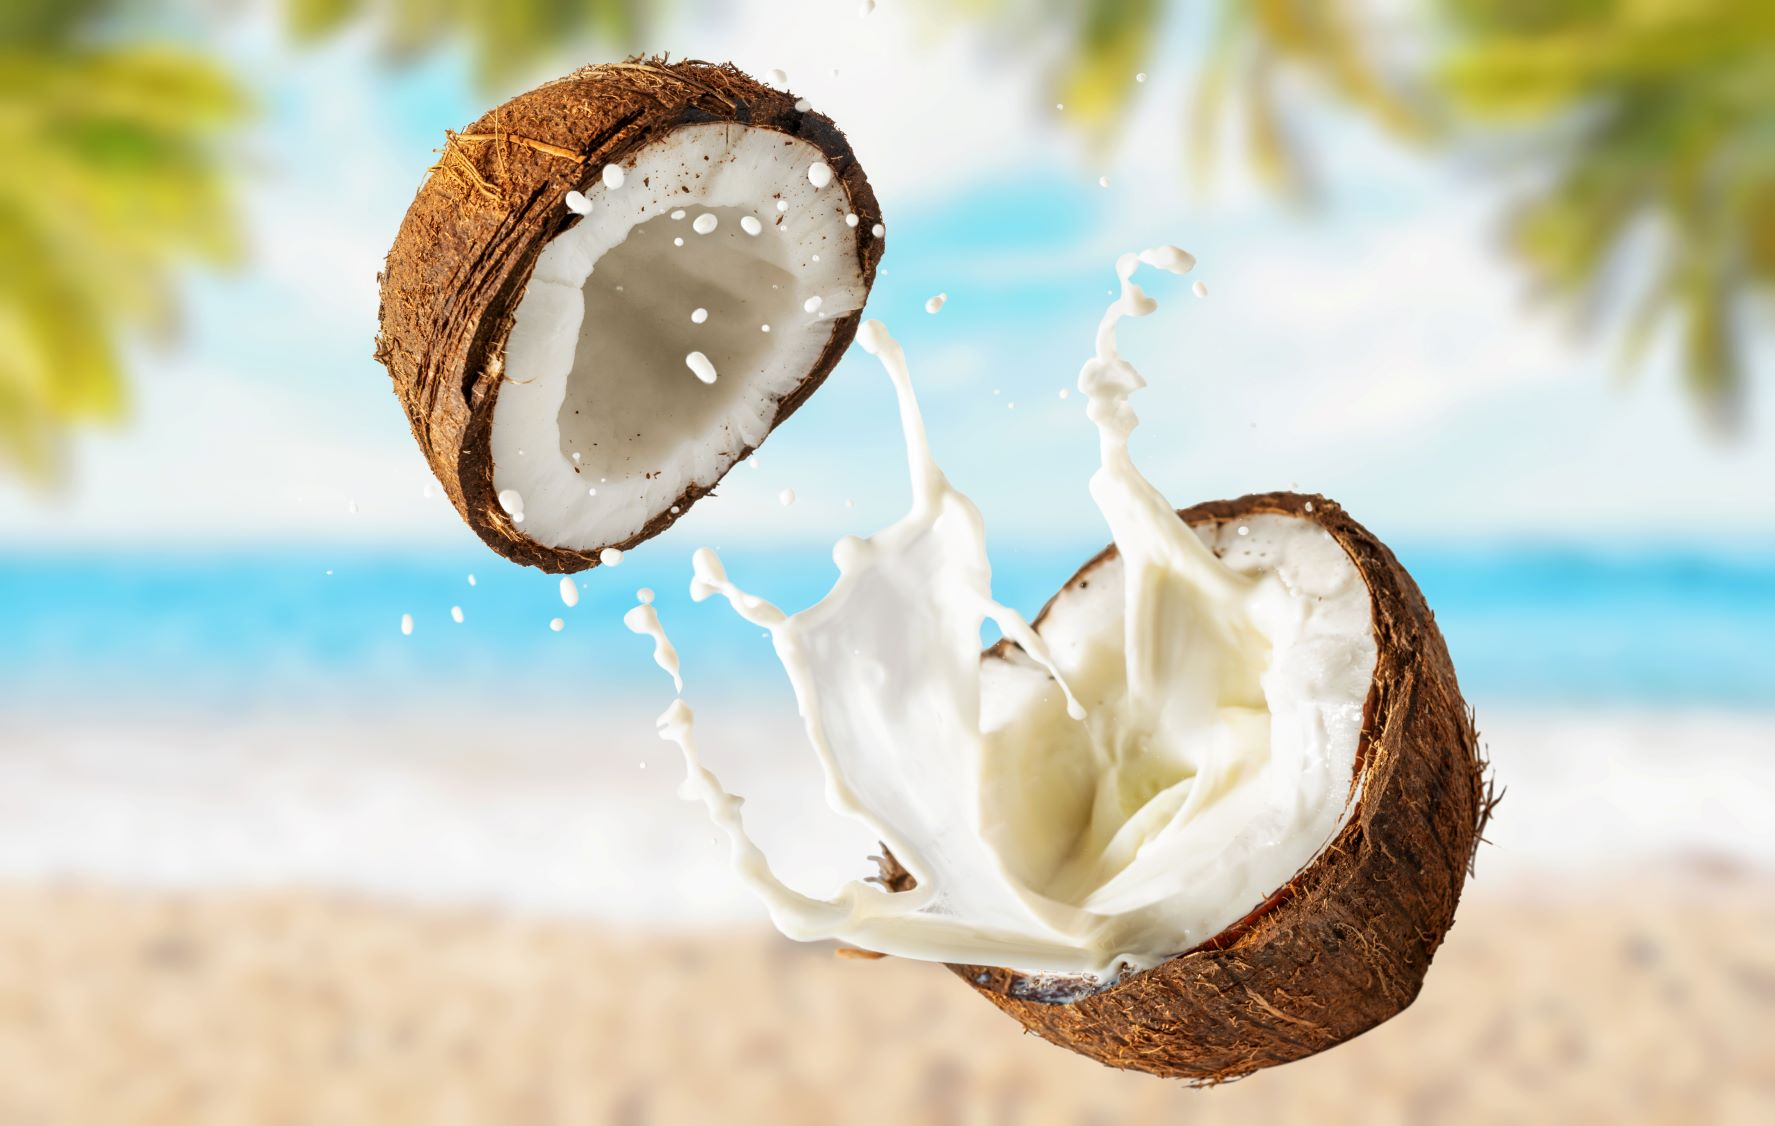 mcoconut-with-milk-beach-with-palm-trees